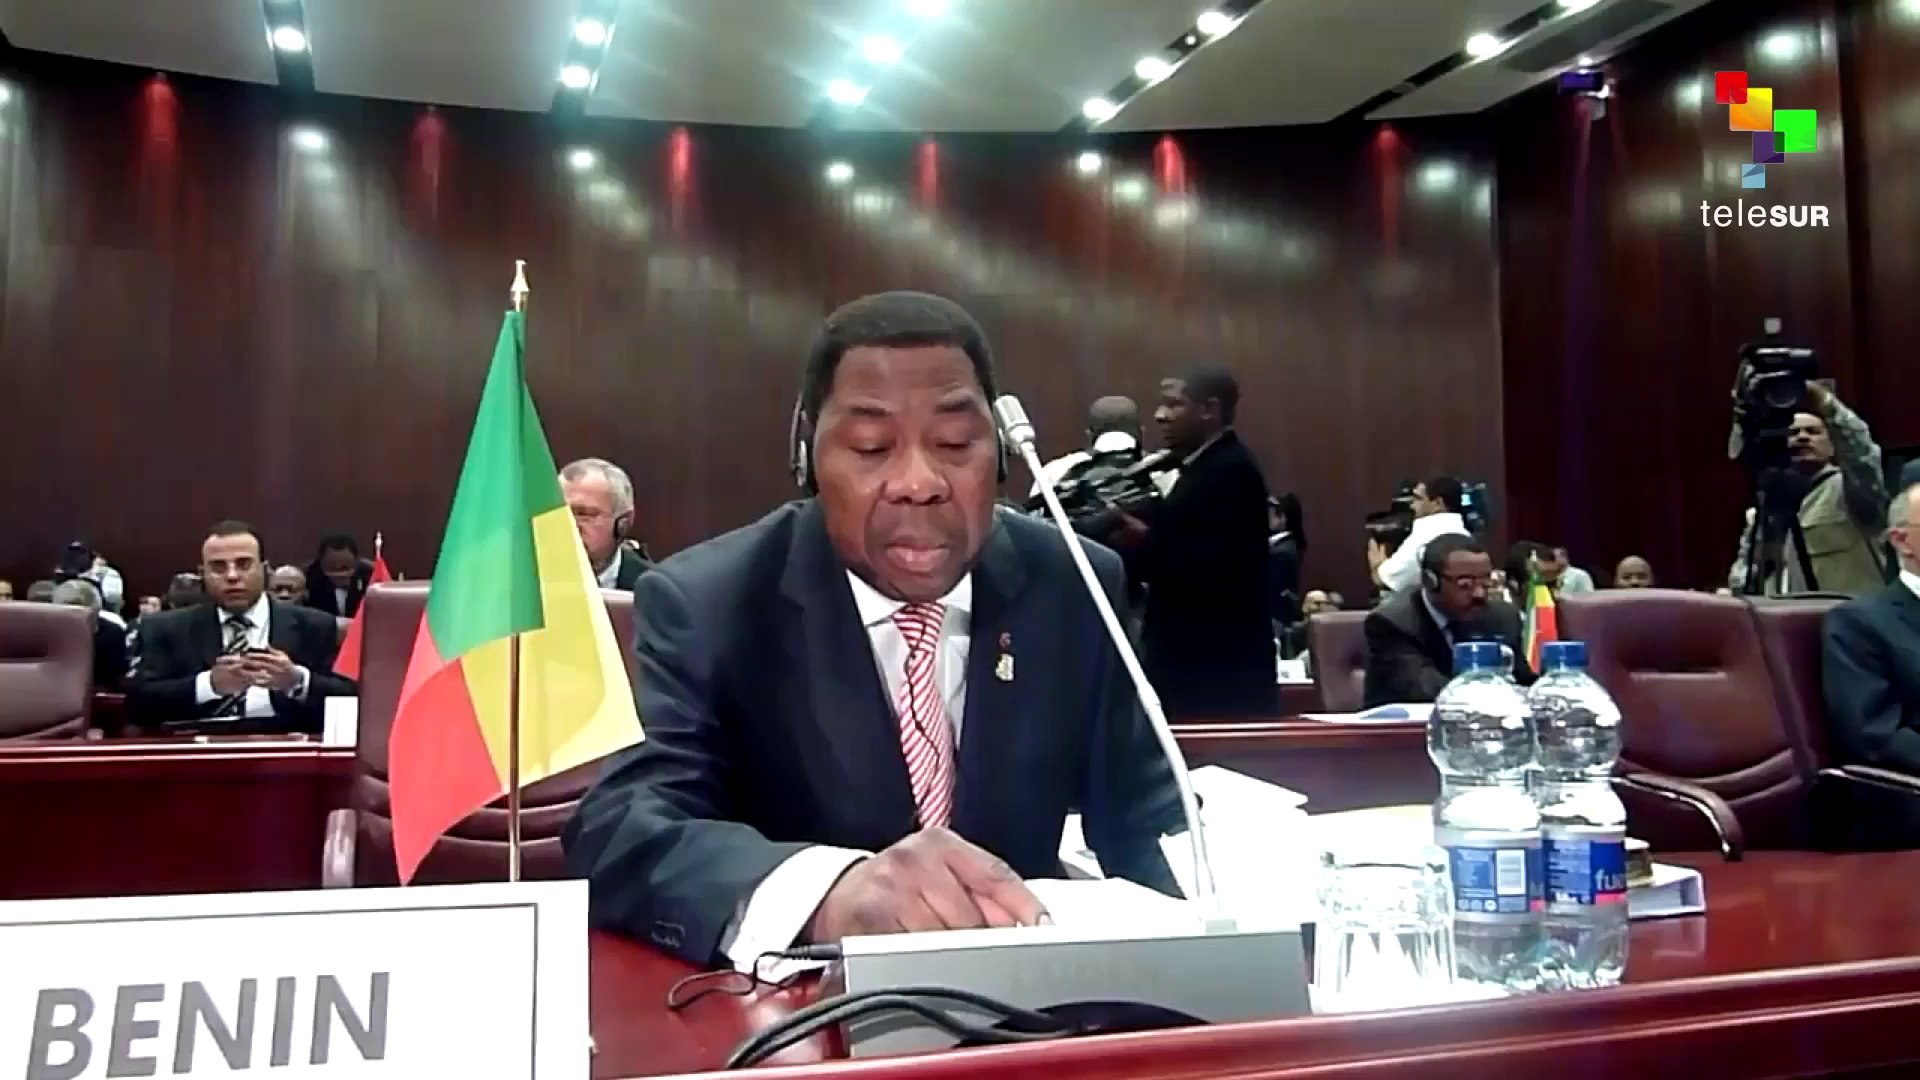 The Global African - African Union